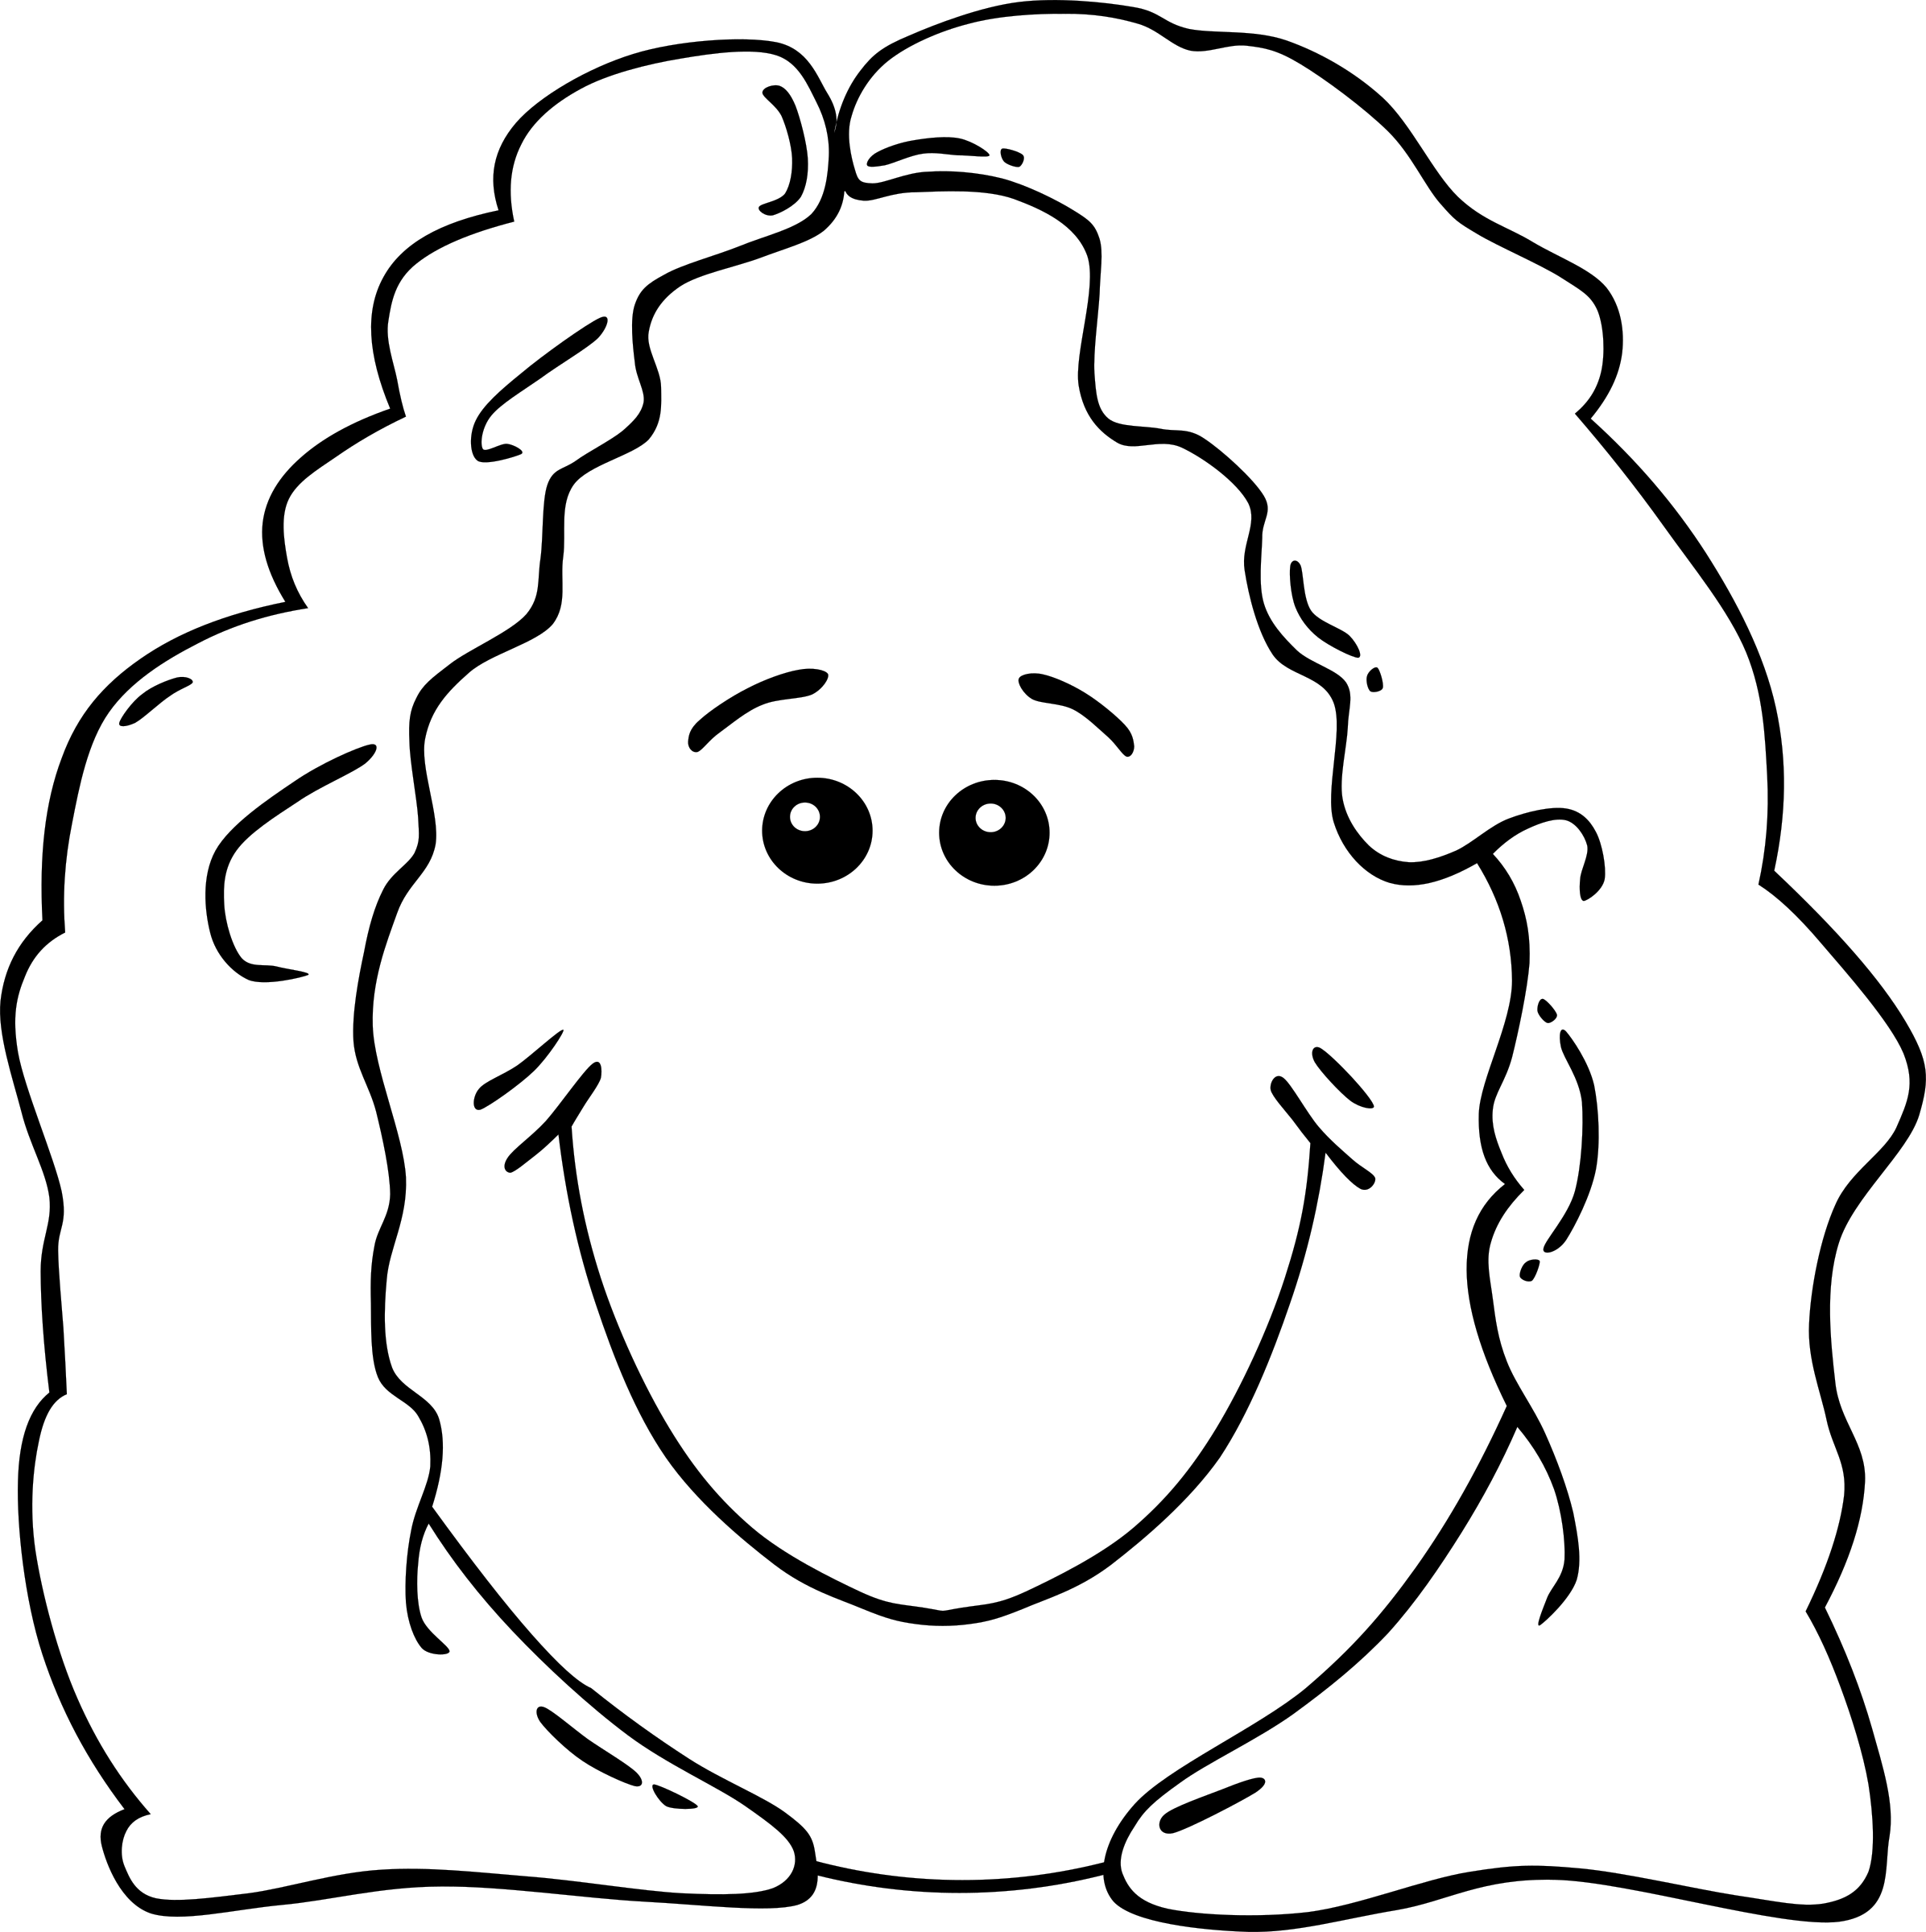 Number 1 clipart face. Lady from world label